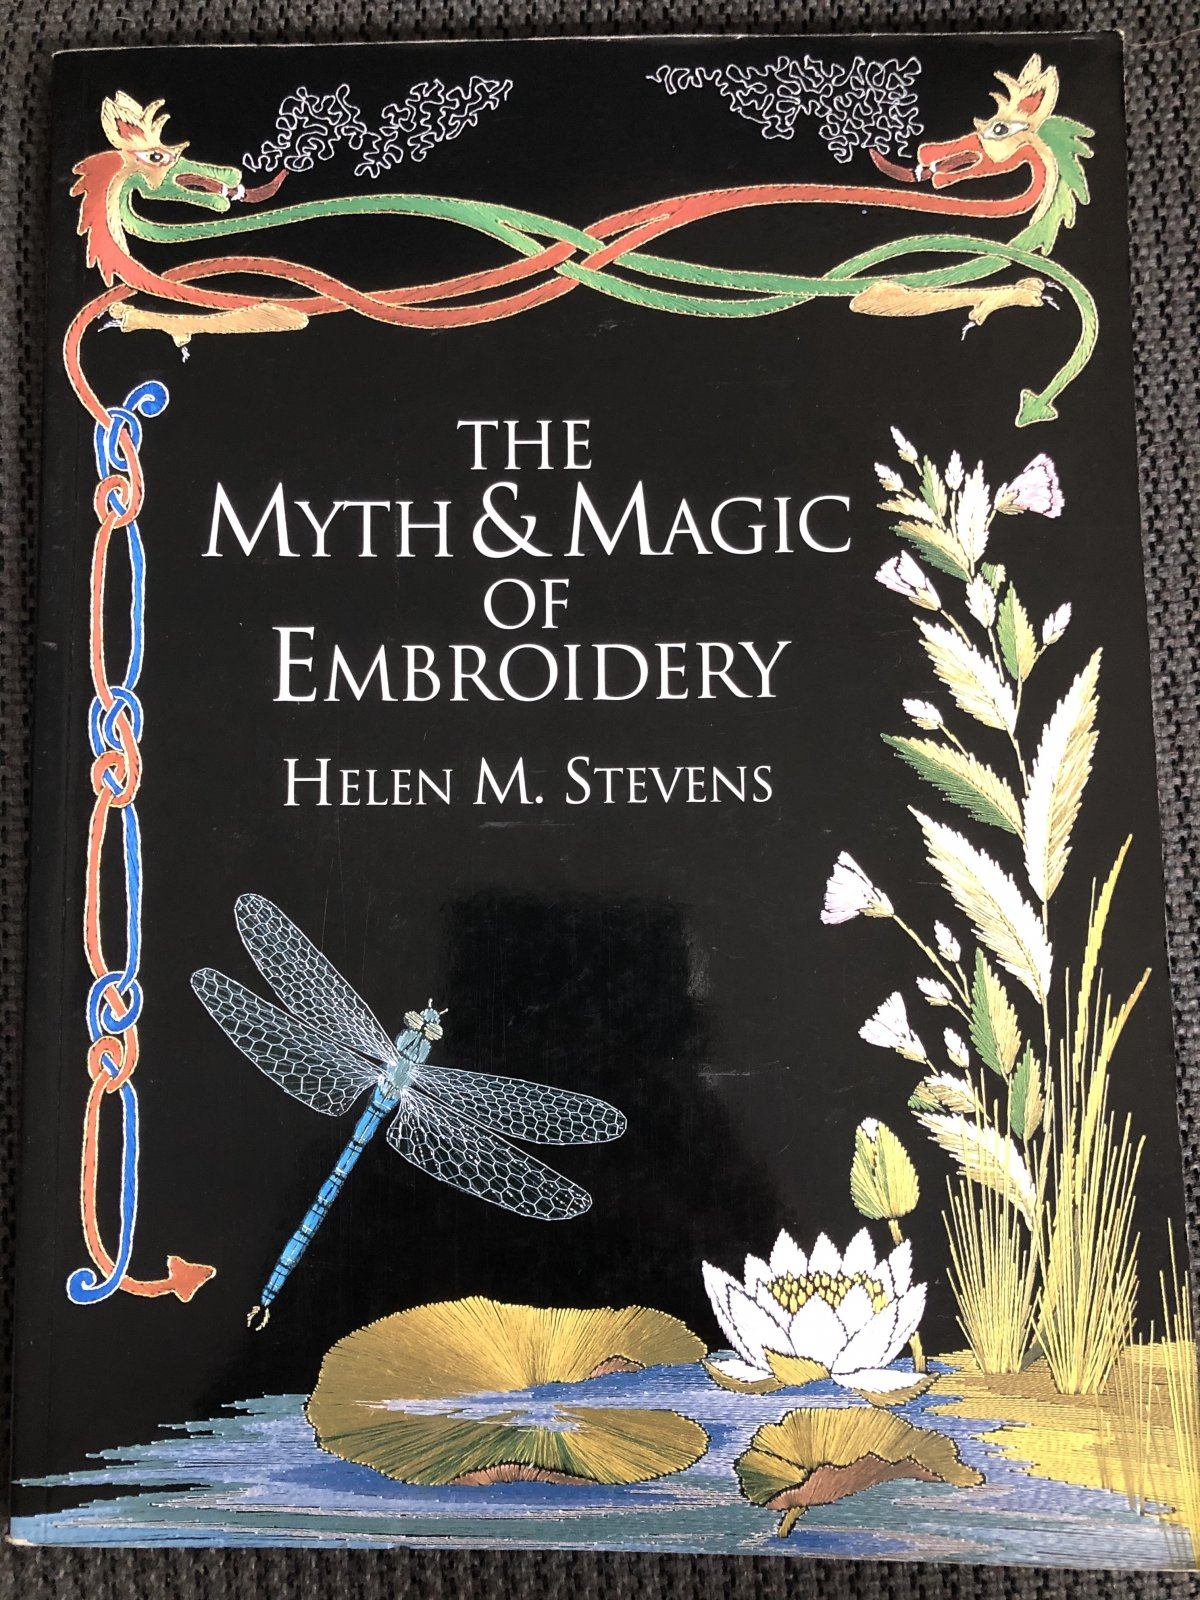 Myth & Magic of Embroidery, The